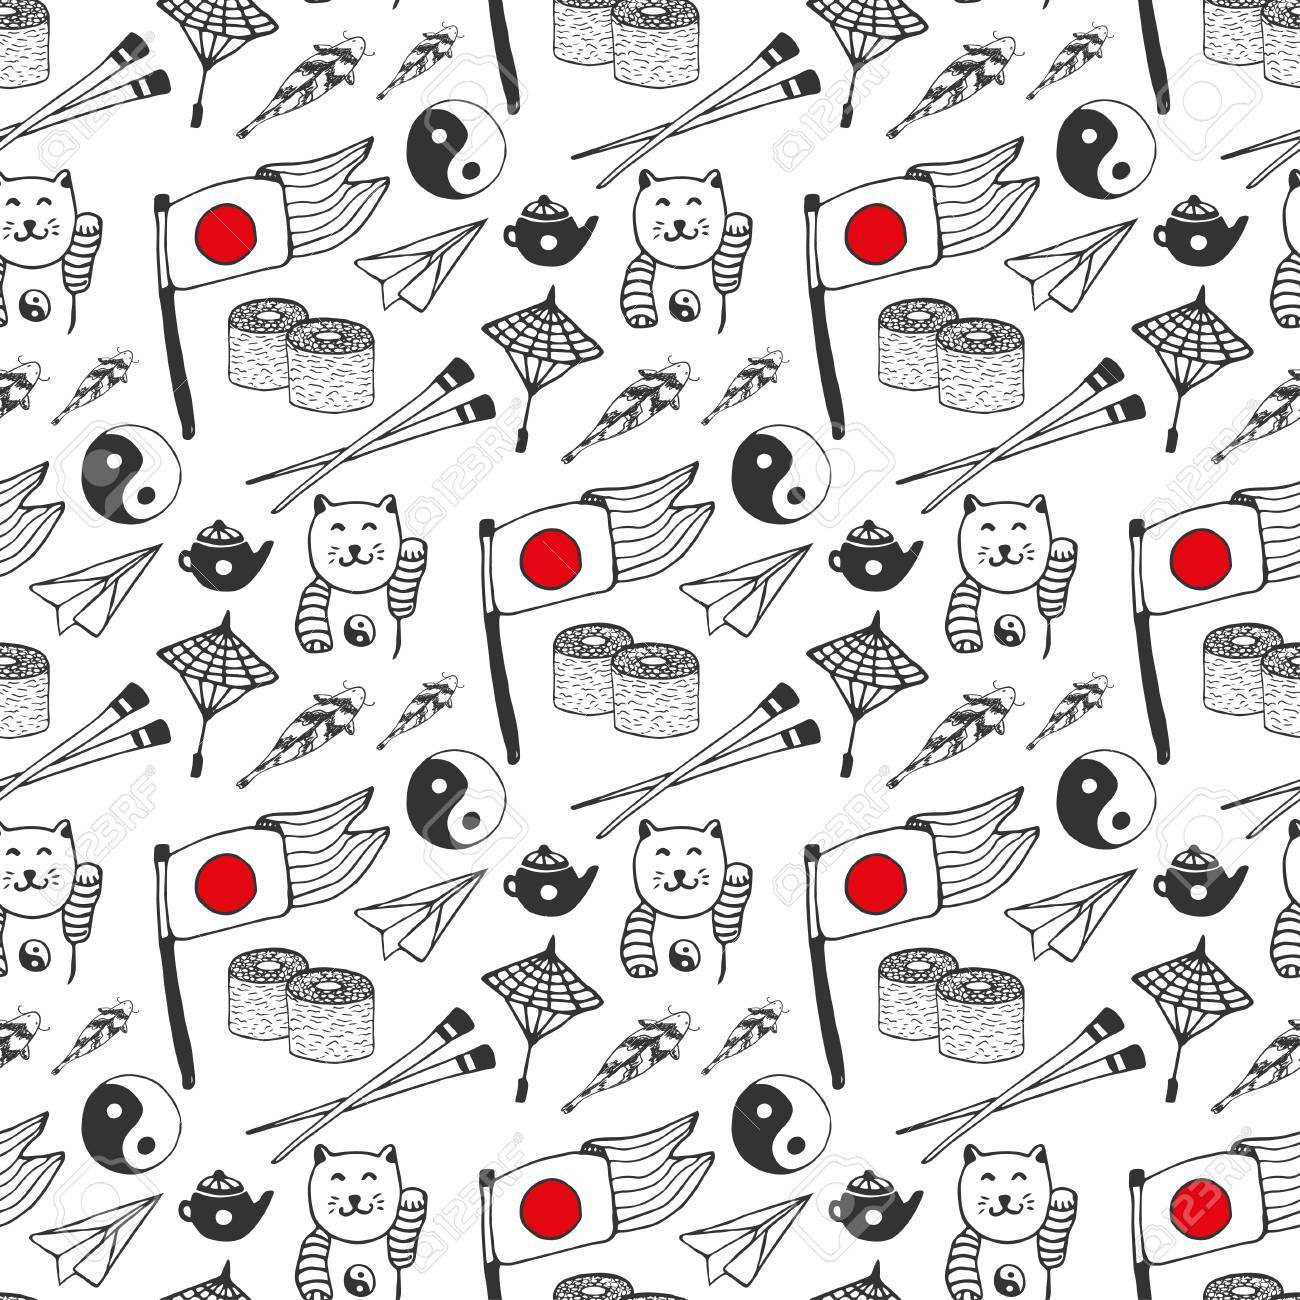 Hand Drawn Seamless Pattern With Japan Culture Elements Japan Background For Design Vector Il Ration